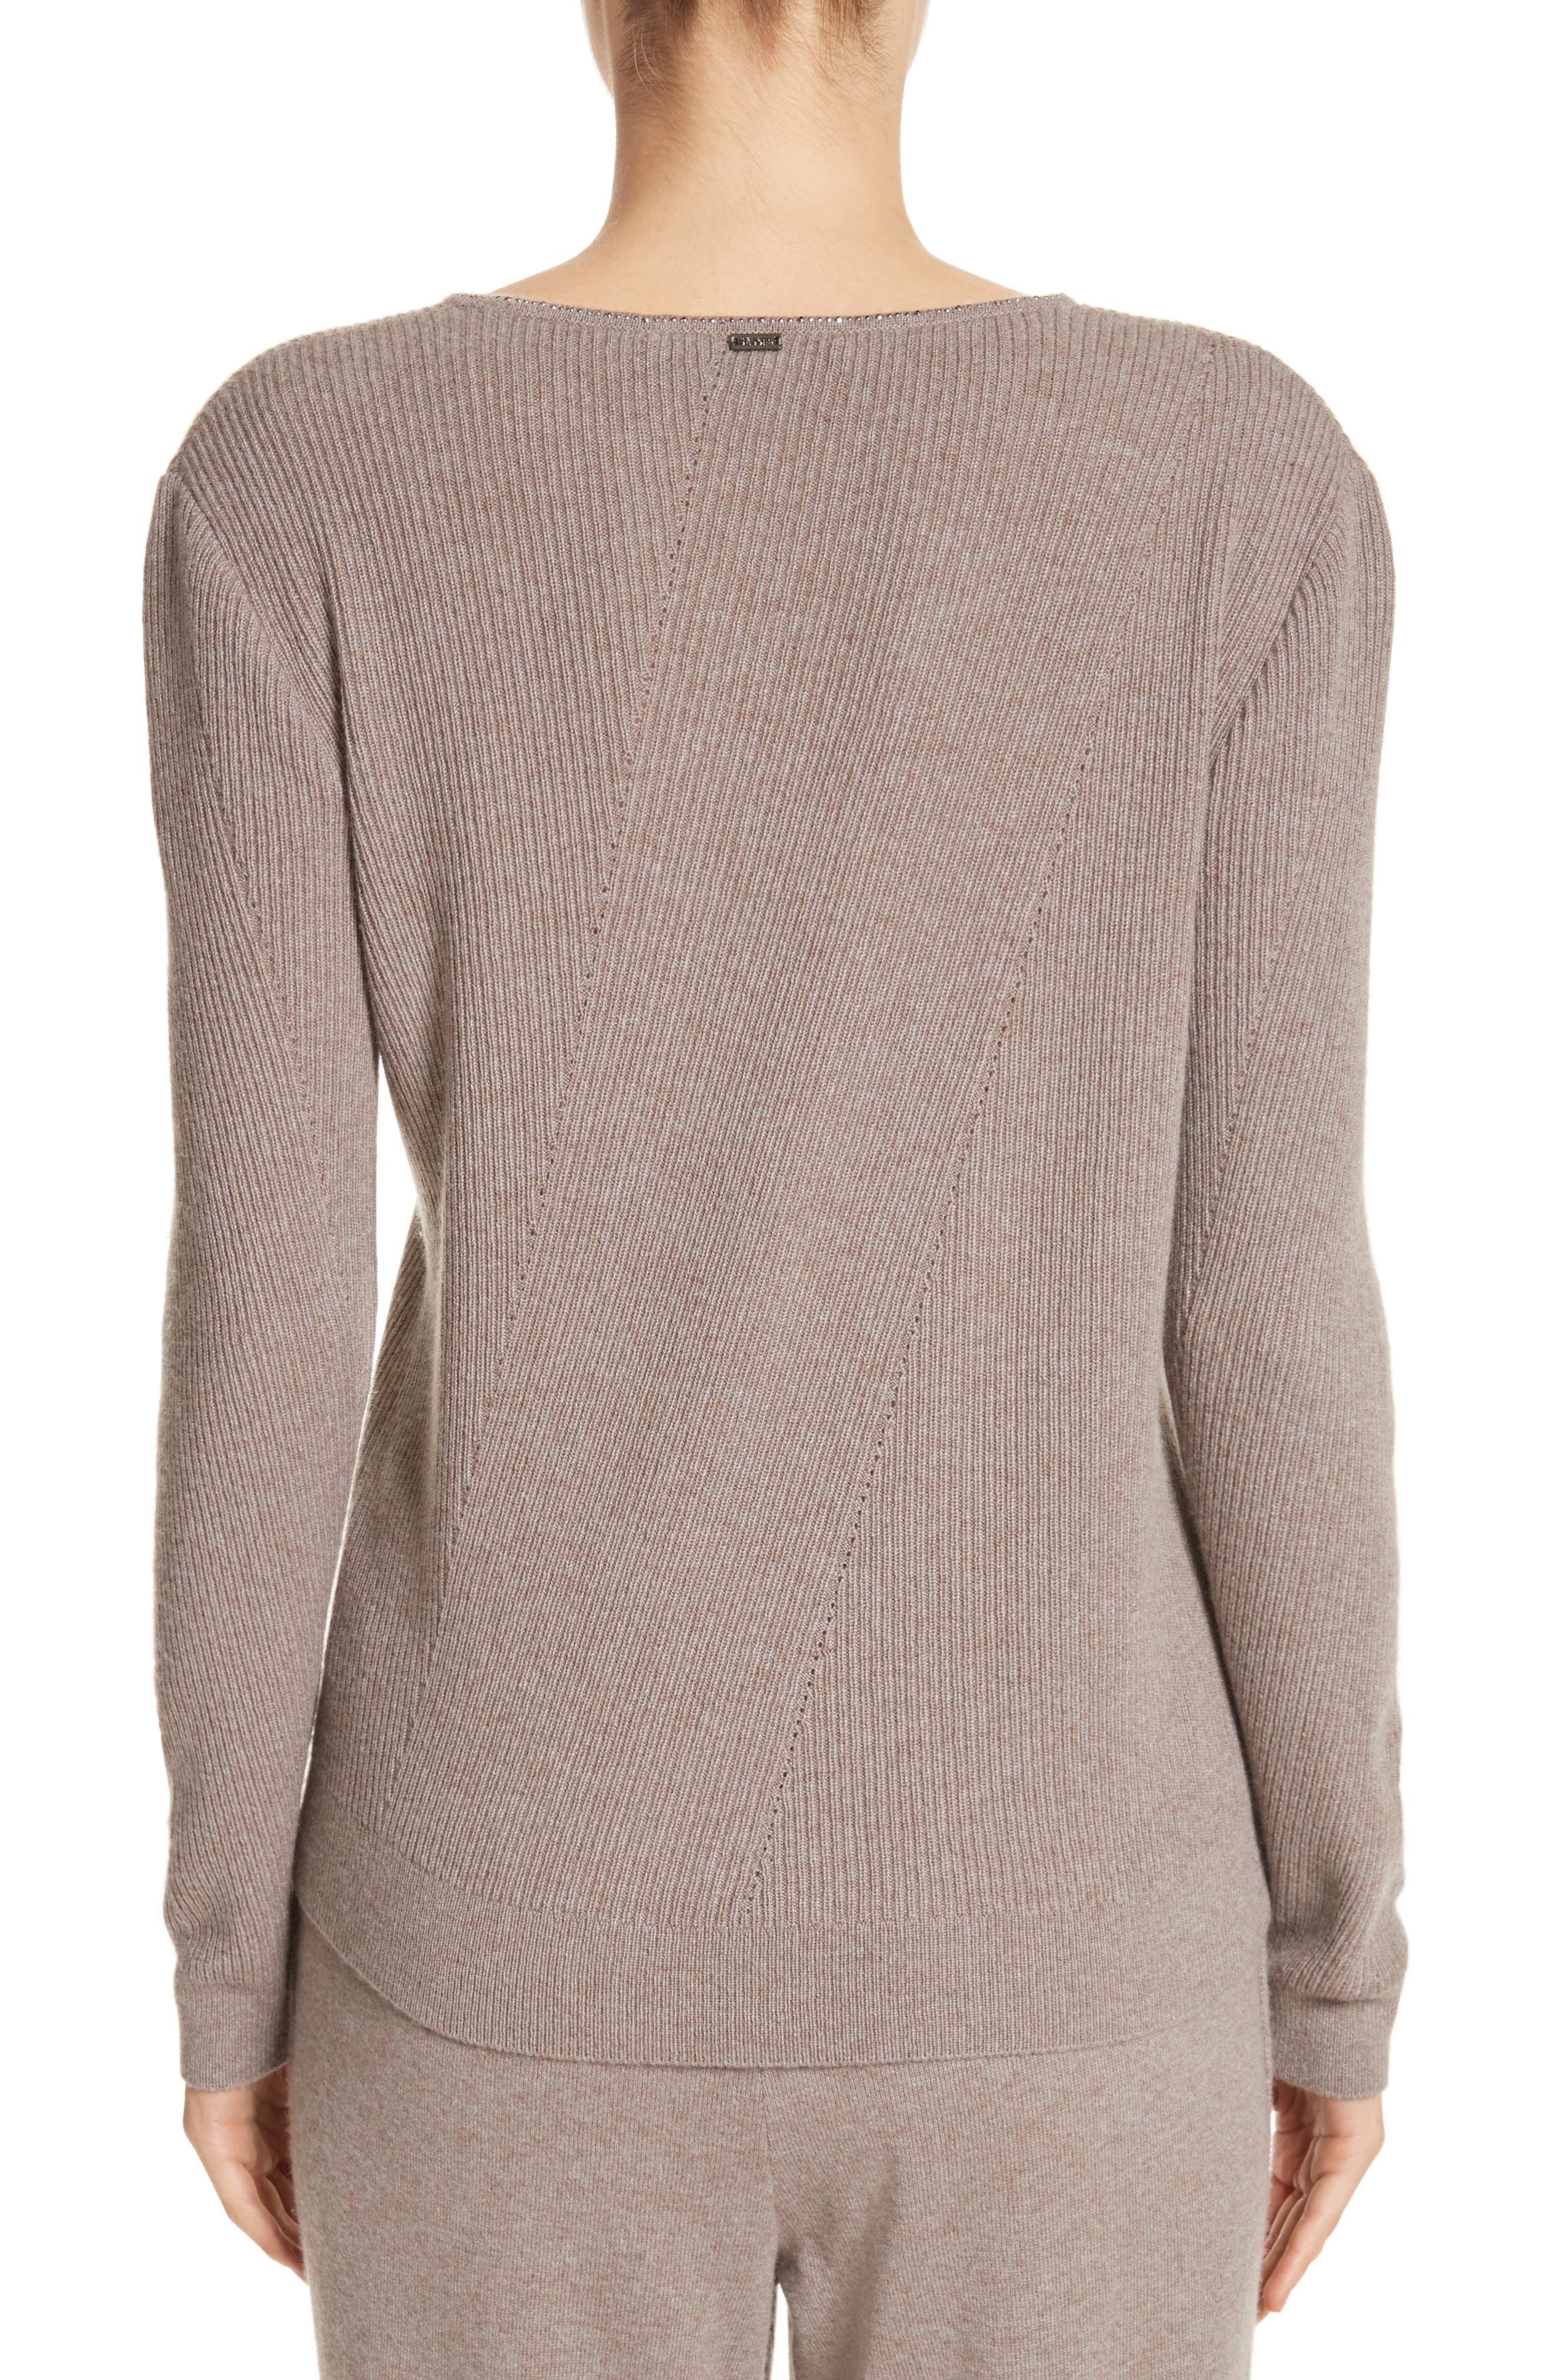 Cashmere Sweater,                             Alternate thumbnail 2, color,                             030